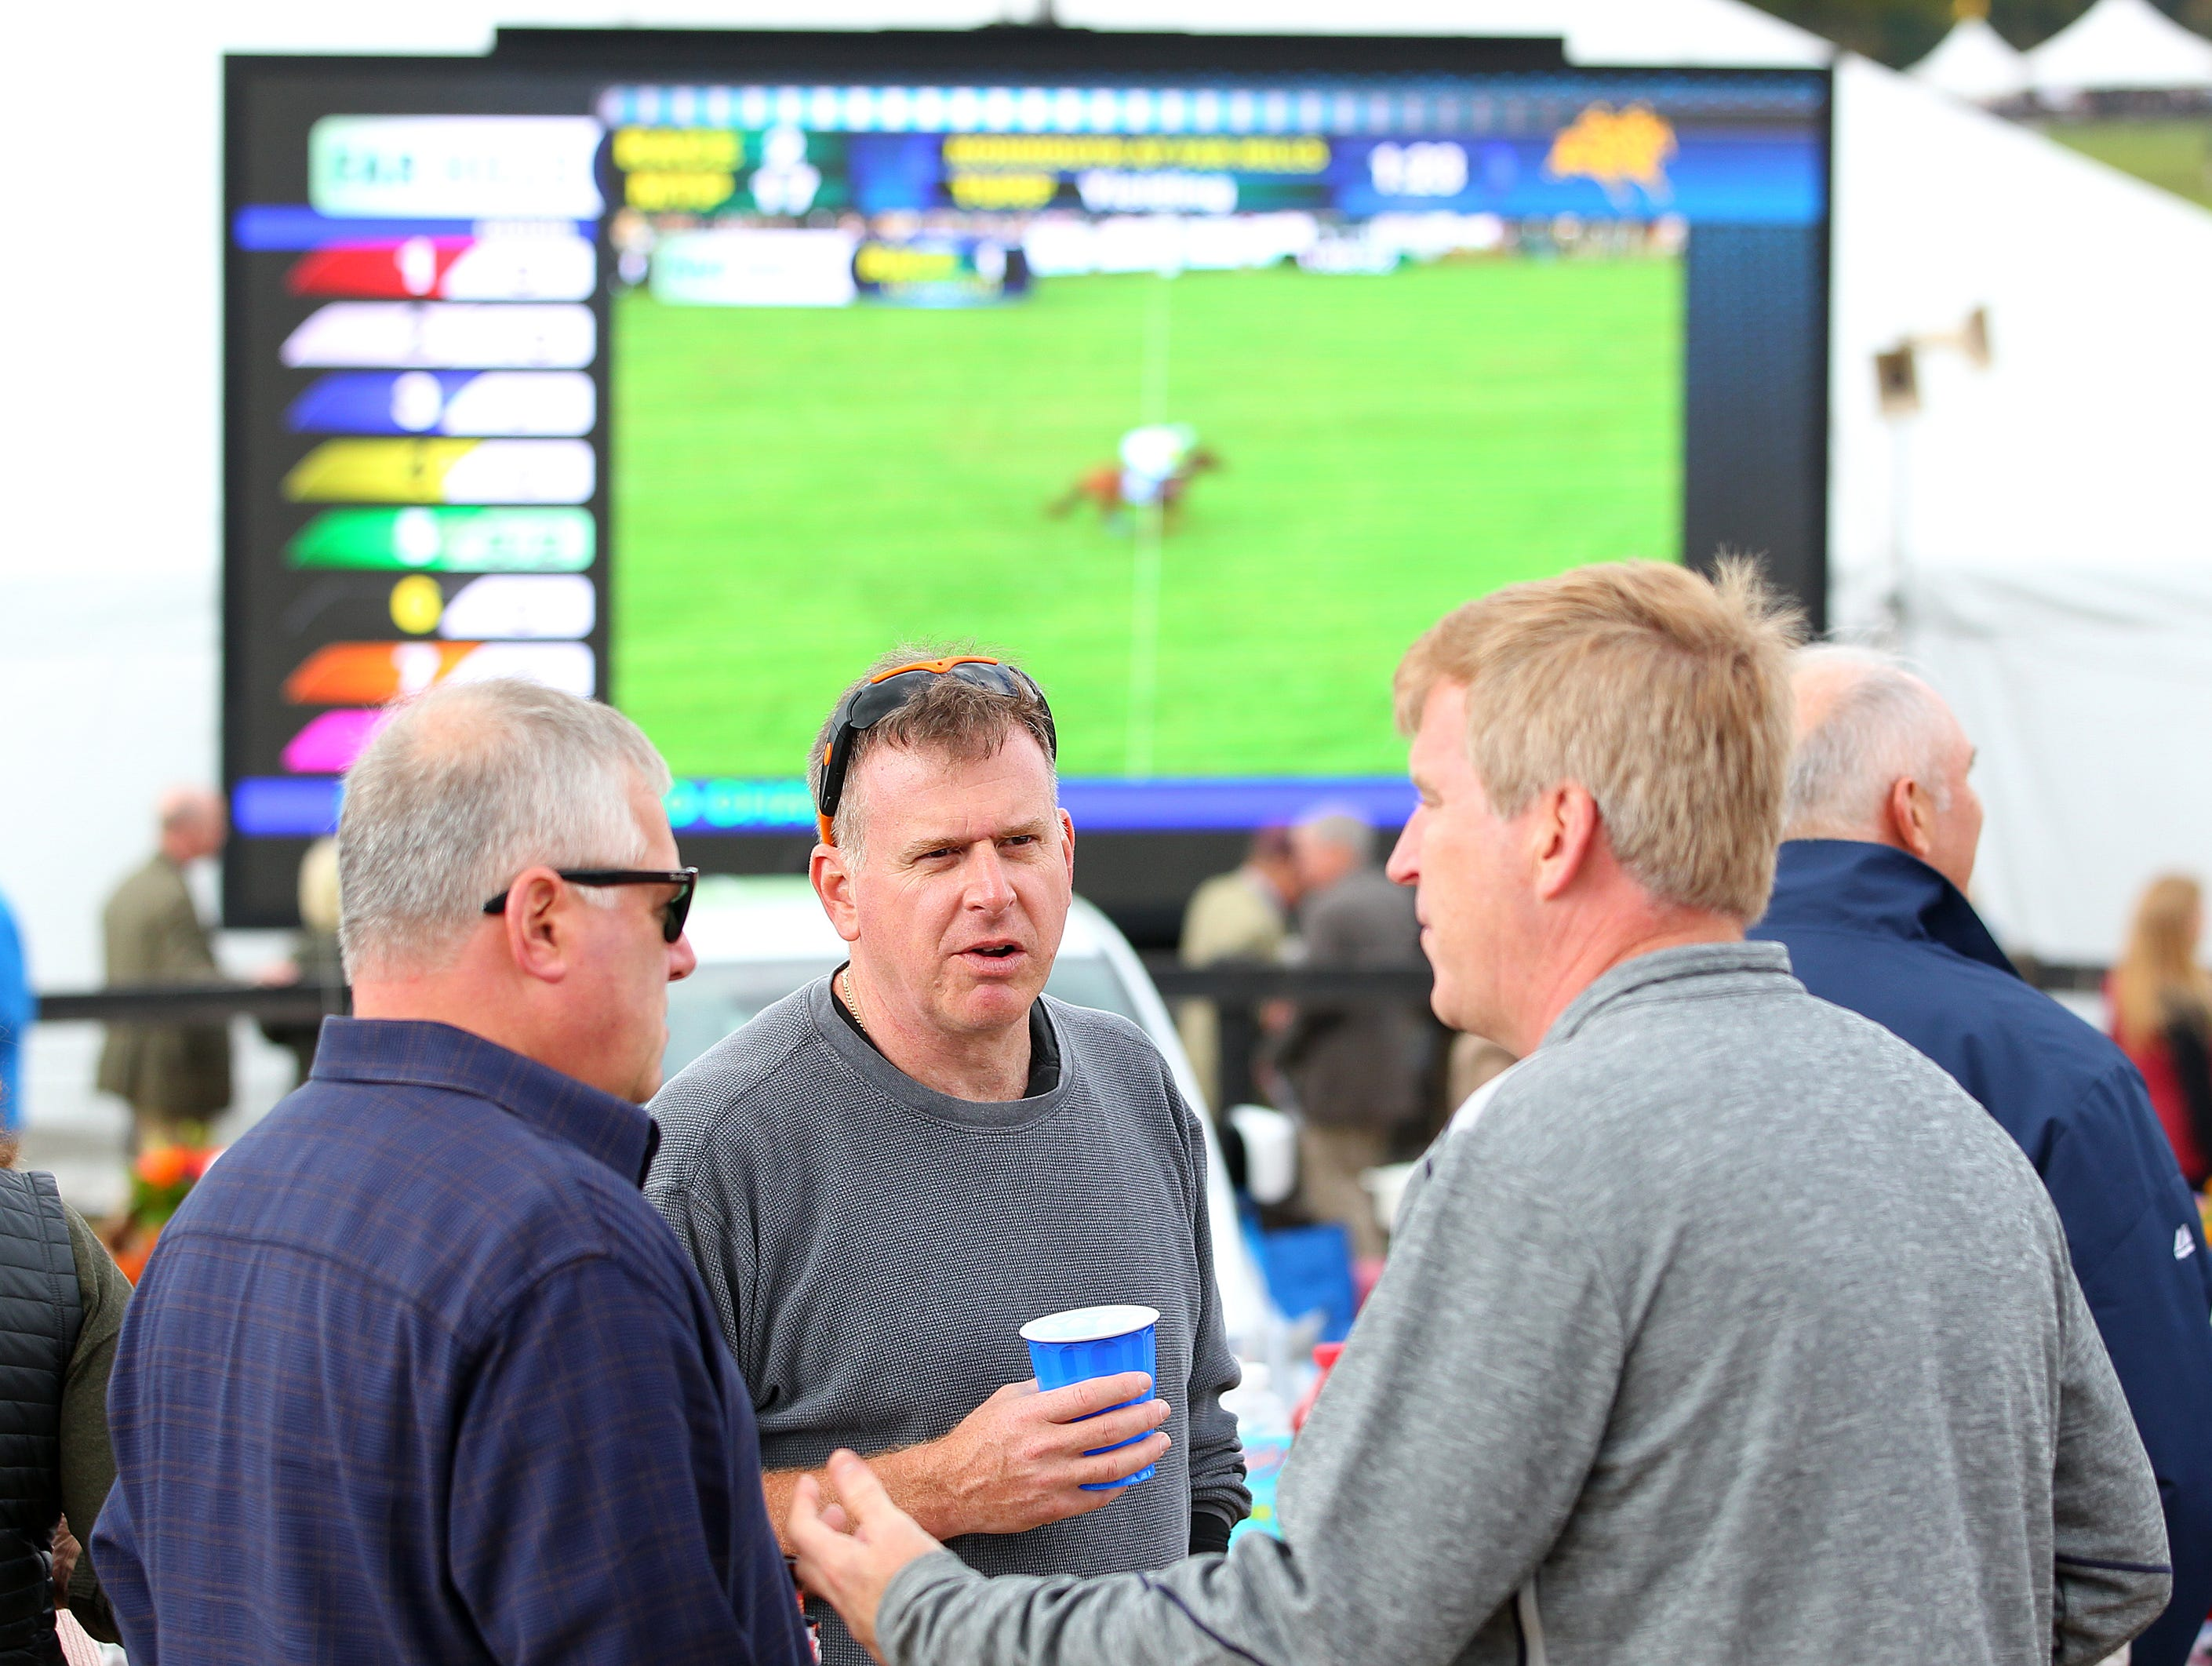 Three spectators talk during the 98th running of the Far Hills Race Meeting at Moorland Farm in Far Hills, N.J. on Saturday, Oct. 20, 2015. Photo by Rich Schultz/ HNT